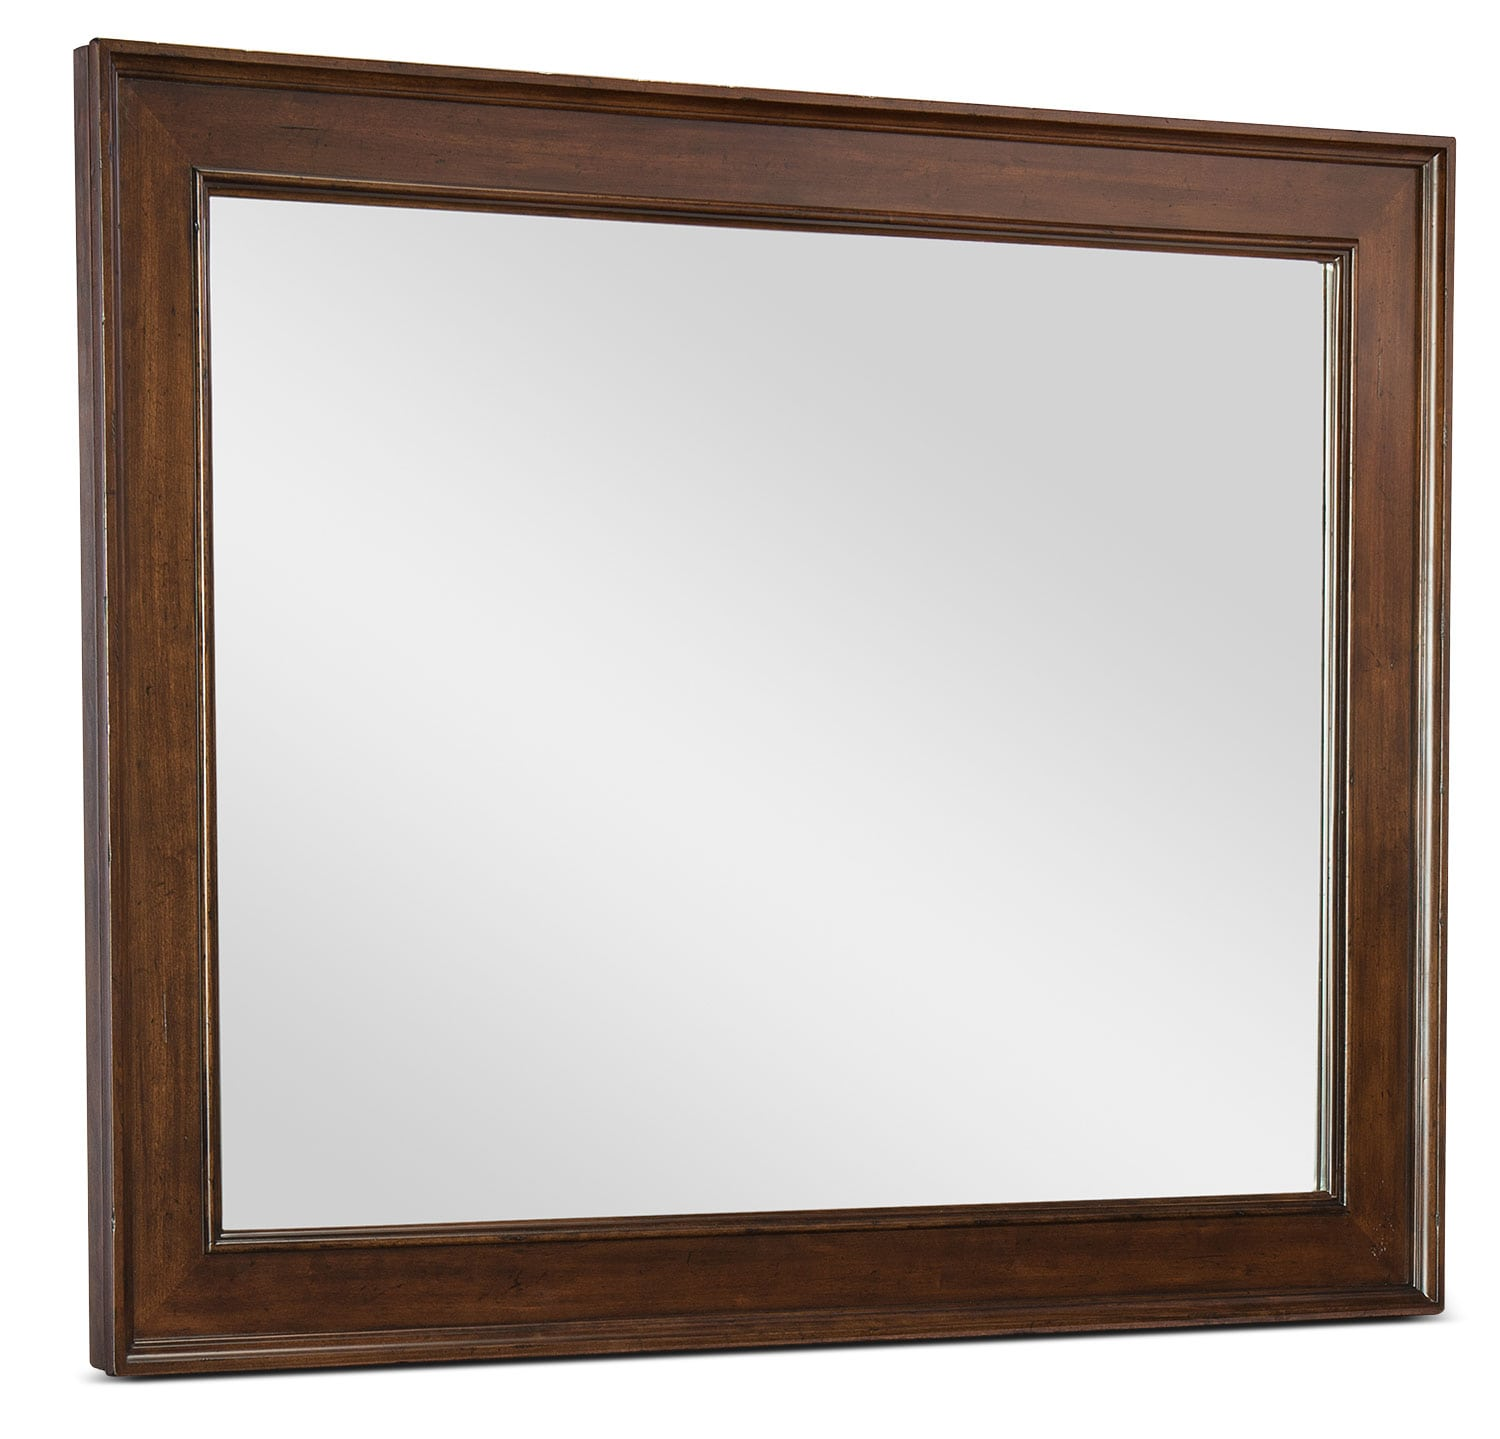 Bedroom Furniture - Rachael Ray Upstate Mirror - Conciare Cherry